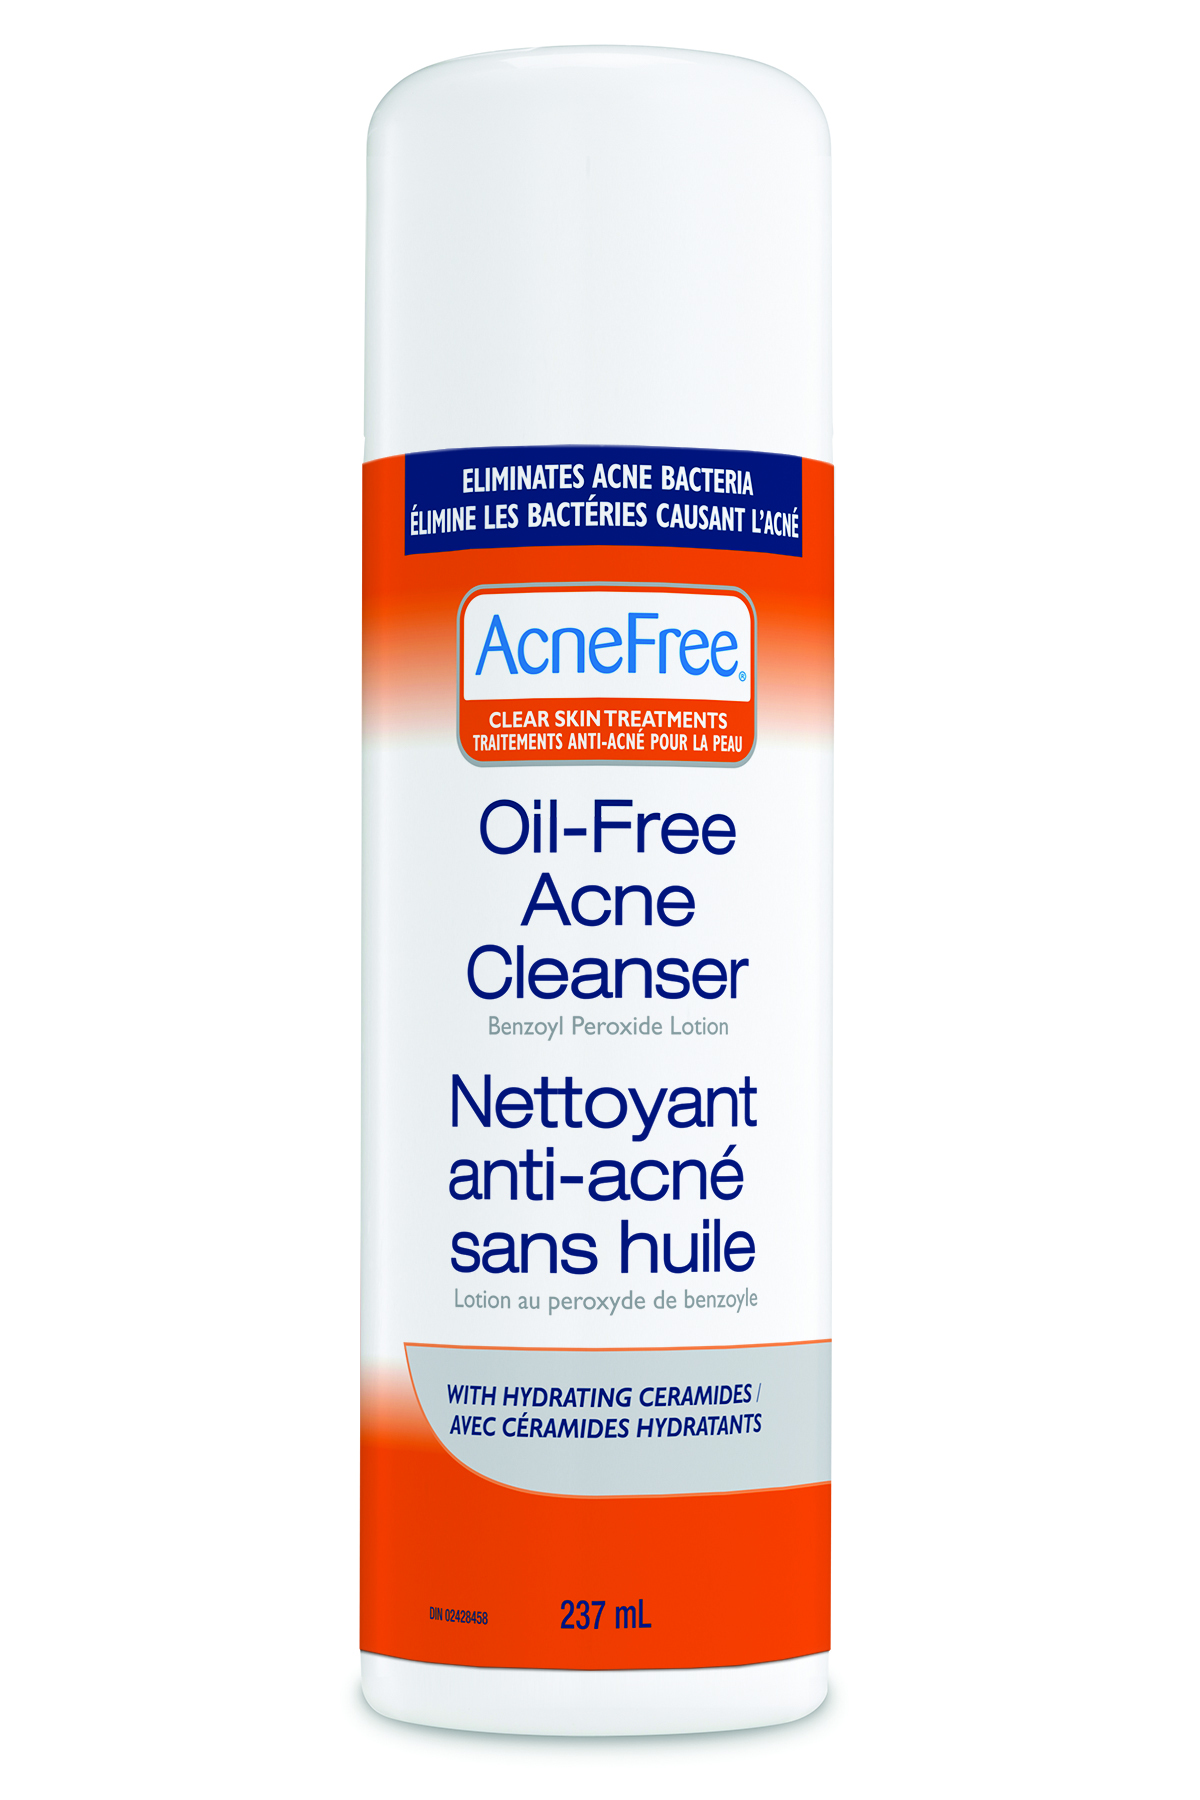 AcneFree Oil-Free Acne Cleanser reviews in Blemish & Acne ...